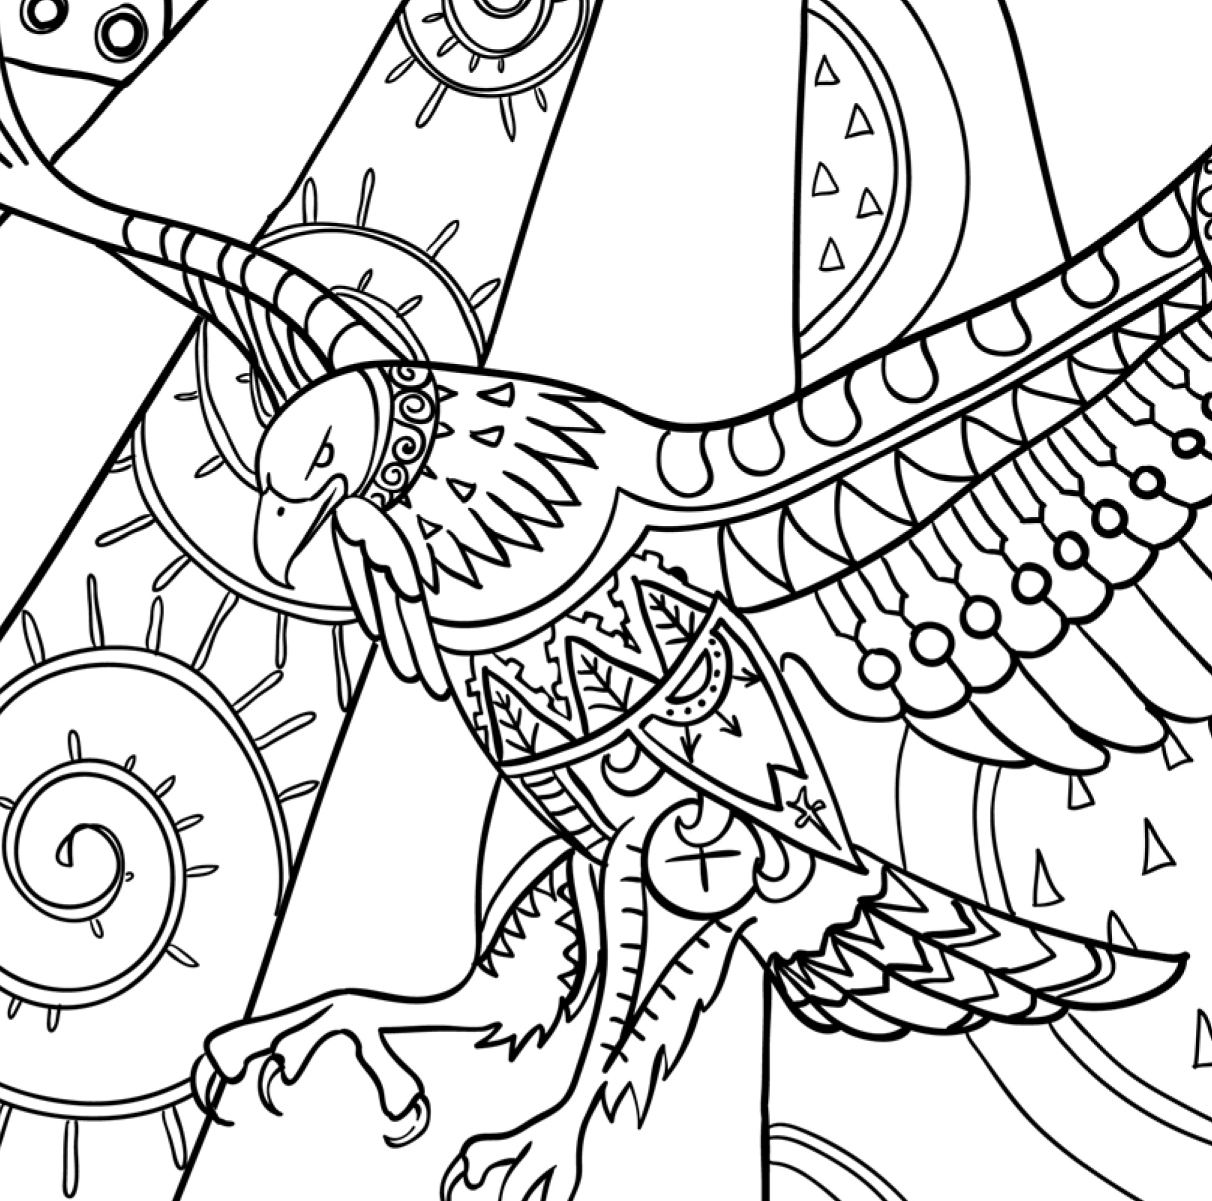 bird coloring pages for adults amazing birds adult coloring book review promotion pages for coloring adults bird